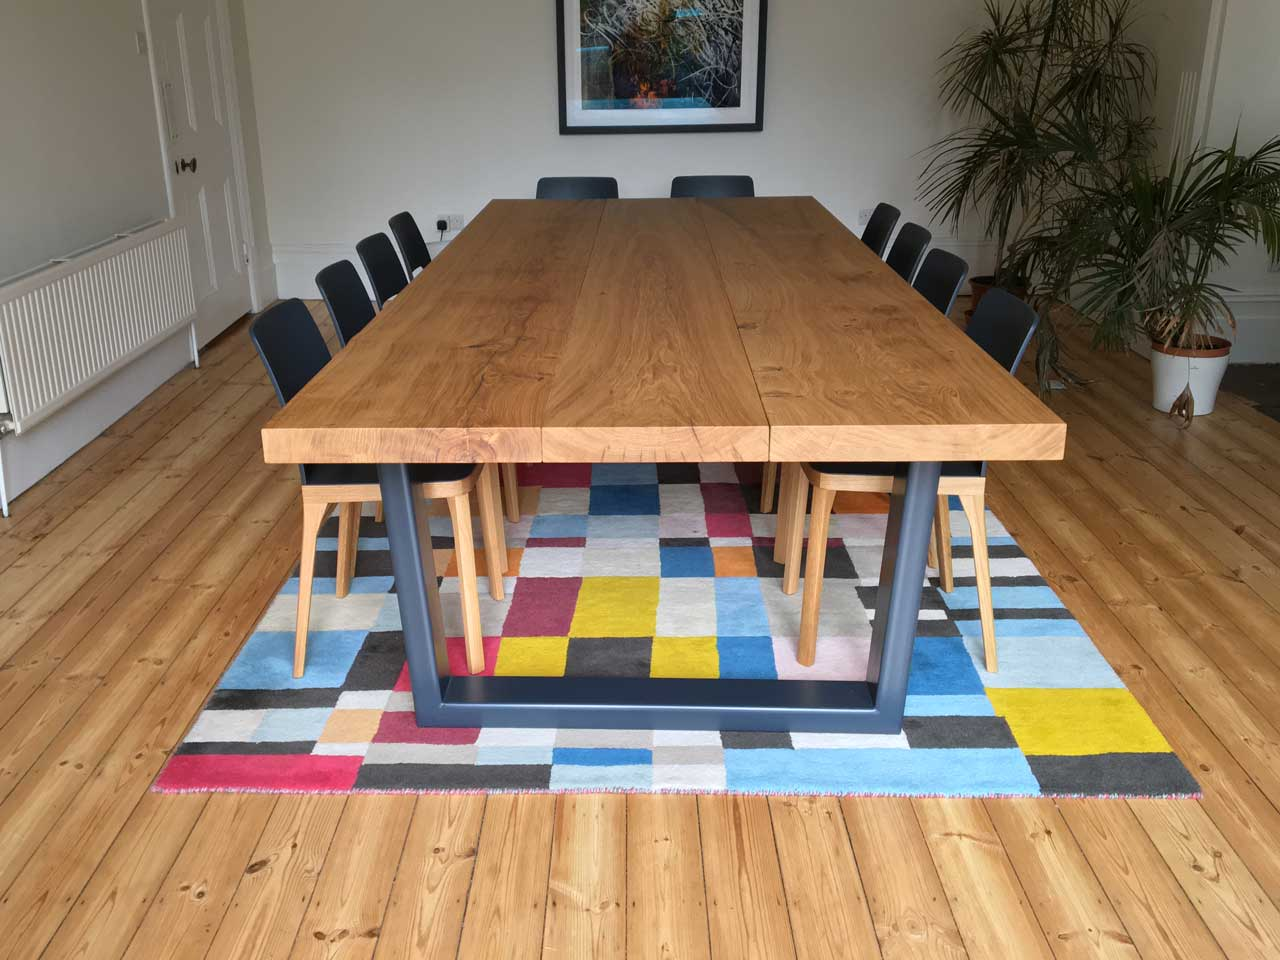 abacus-tables-project-927-pic-2